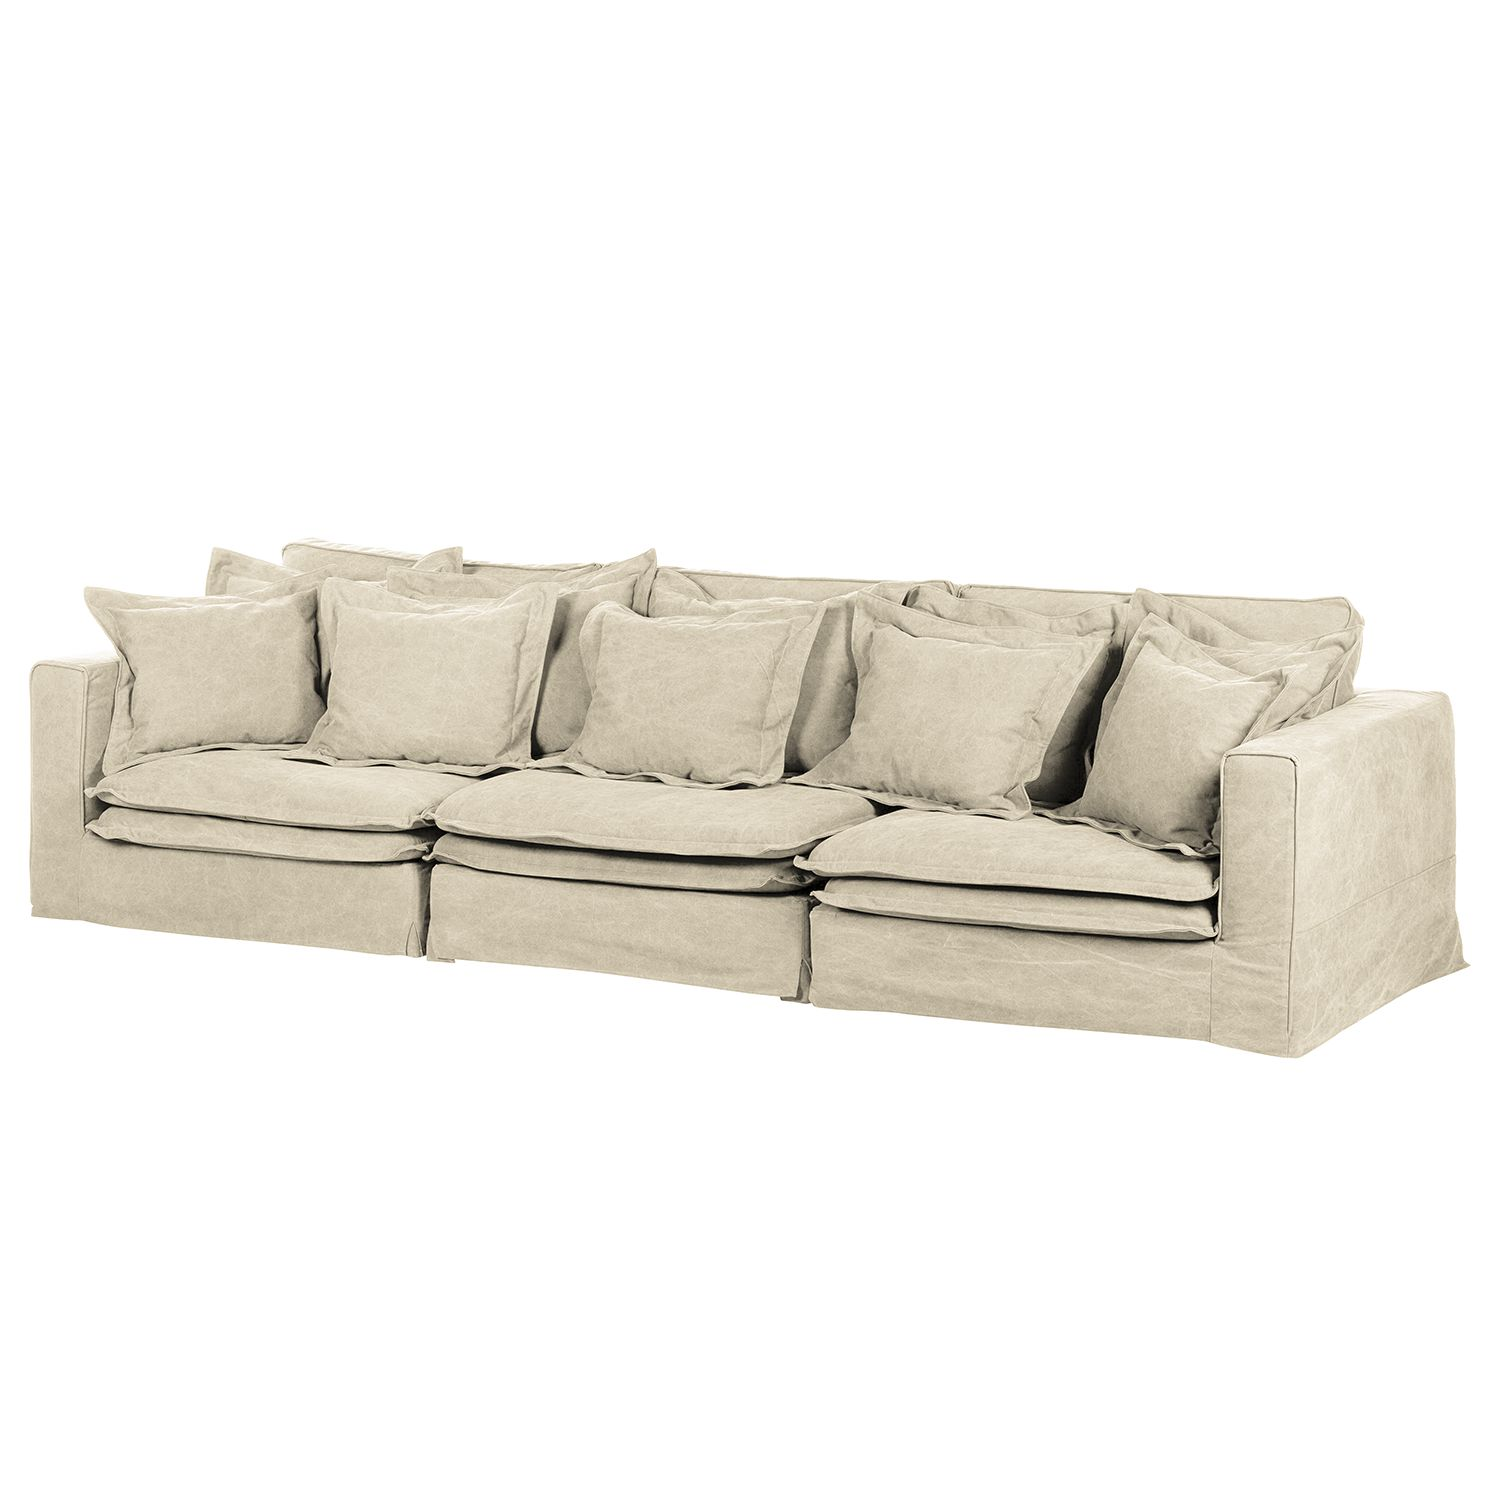 home24 Bigsofa Coral Beach Webstoff